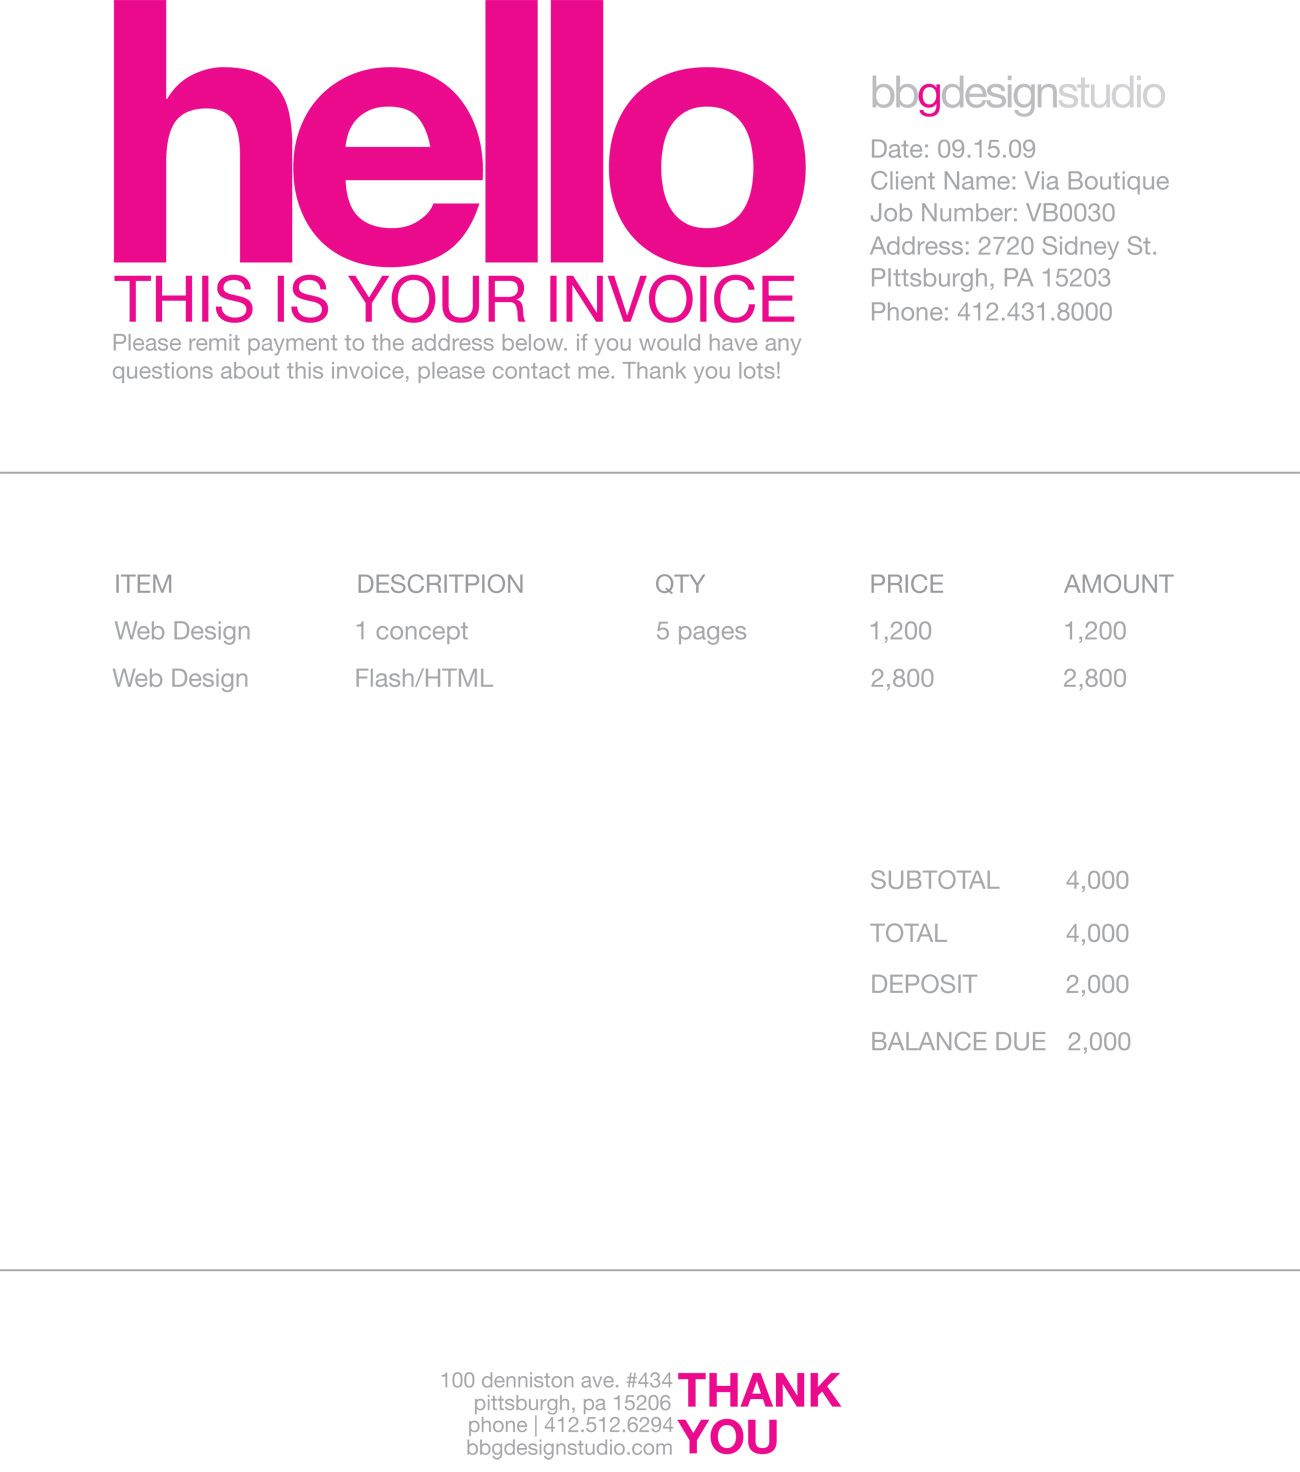 Aaaaeroincus  Gorgeous  Images About Invoice Design On Pinterest With Remarkable My Invoices And Estimates Deluxe Besides Invoicing Software For Small Business Furthermore Blank Invoice Form With Lovely Easy Invoice Also Invoice Receipt Template In Addition Dell Invoice And Invoices Free As Well As Medical Invoice Template Additionally Excel Invoice Templates From Pinterestcom With Aaaaeroincus  Remarkable  Images About Invoice Design On Pinterest With Lovely My Invoices And Estimates Deluxe Besides Invoicing Software For Small Business Furthermore Blank Invoice Form And Gorgeous Easy Invoice Also Invoice Receipt Template In Addition Dell Invoice From Pinterestcom